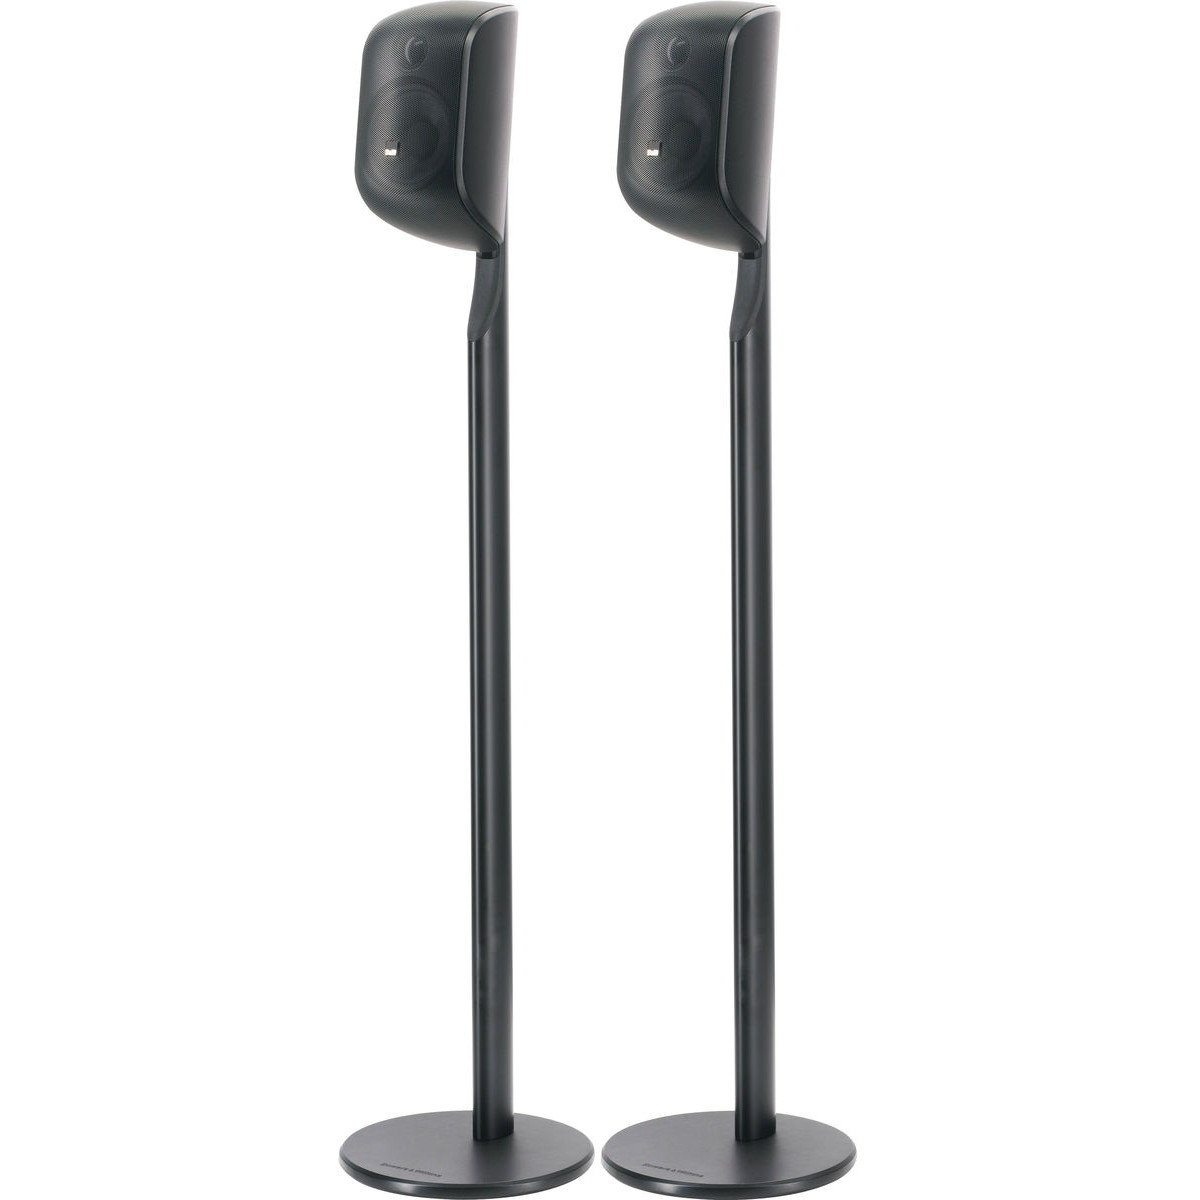 b w fs m1 noir pied support enceinte bowers wilkins sur. Black Bedroom Furniture Sets. Home Design Ideas